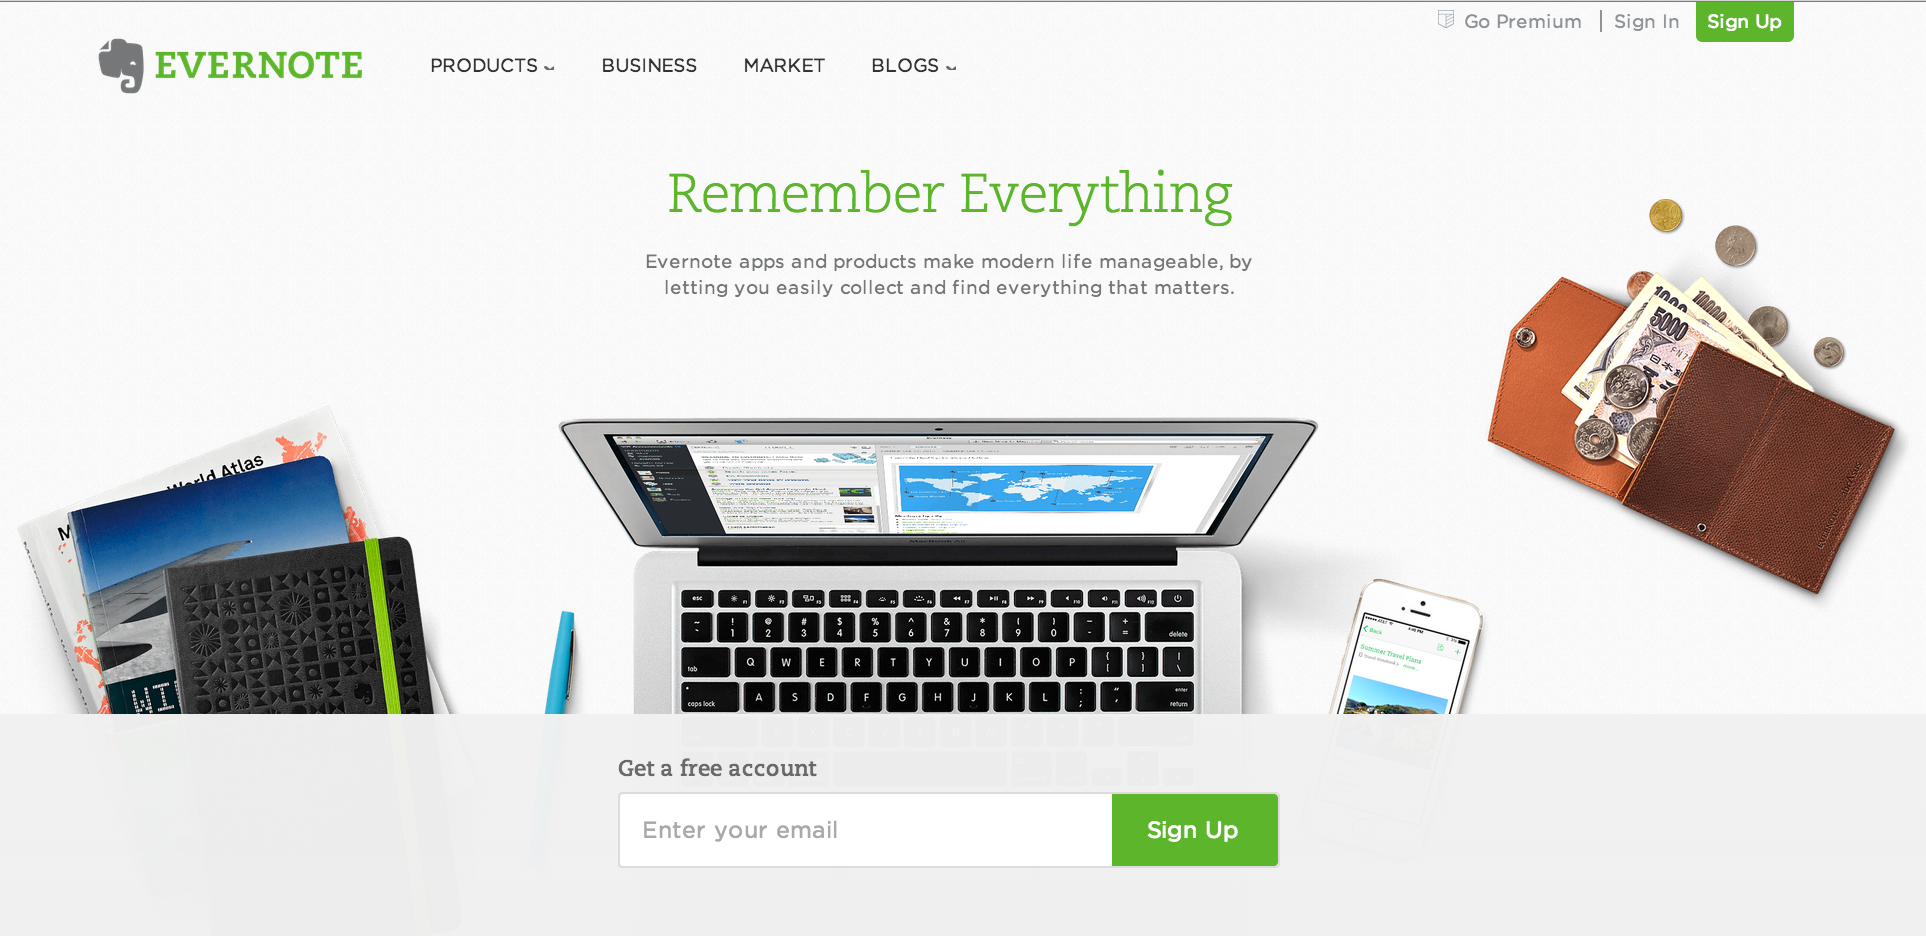 Evernote_home_page